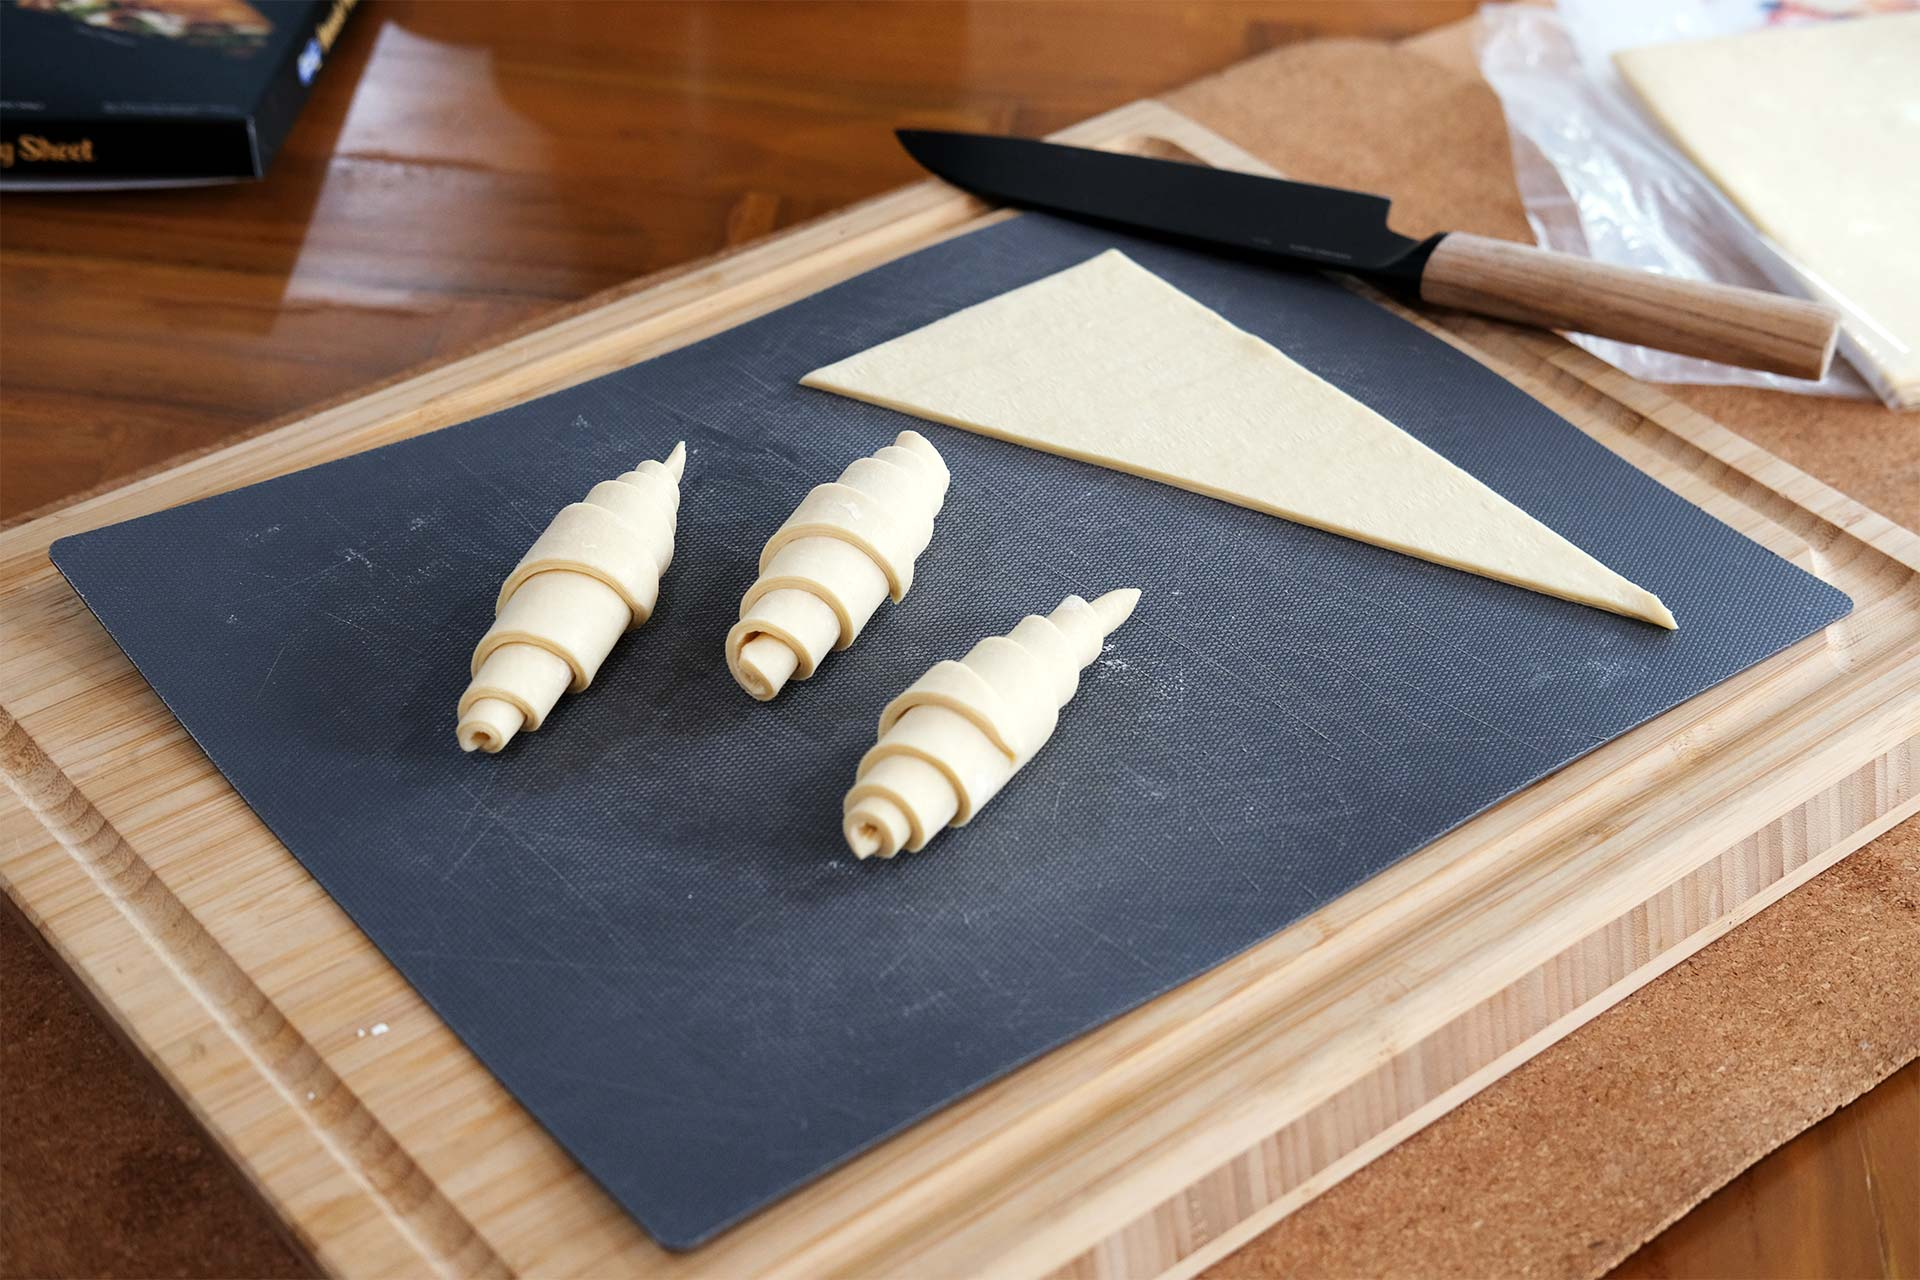 Cutting the pastry